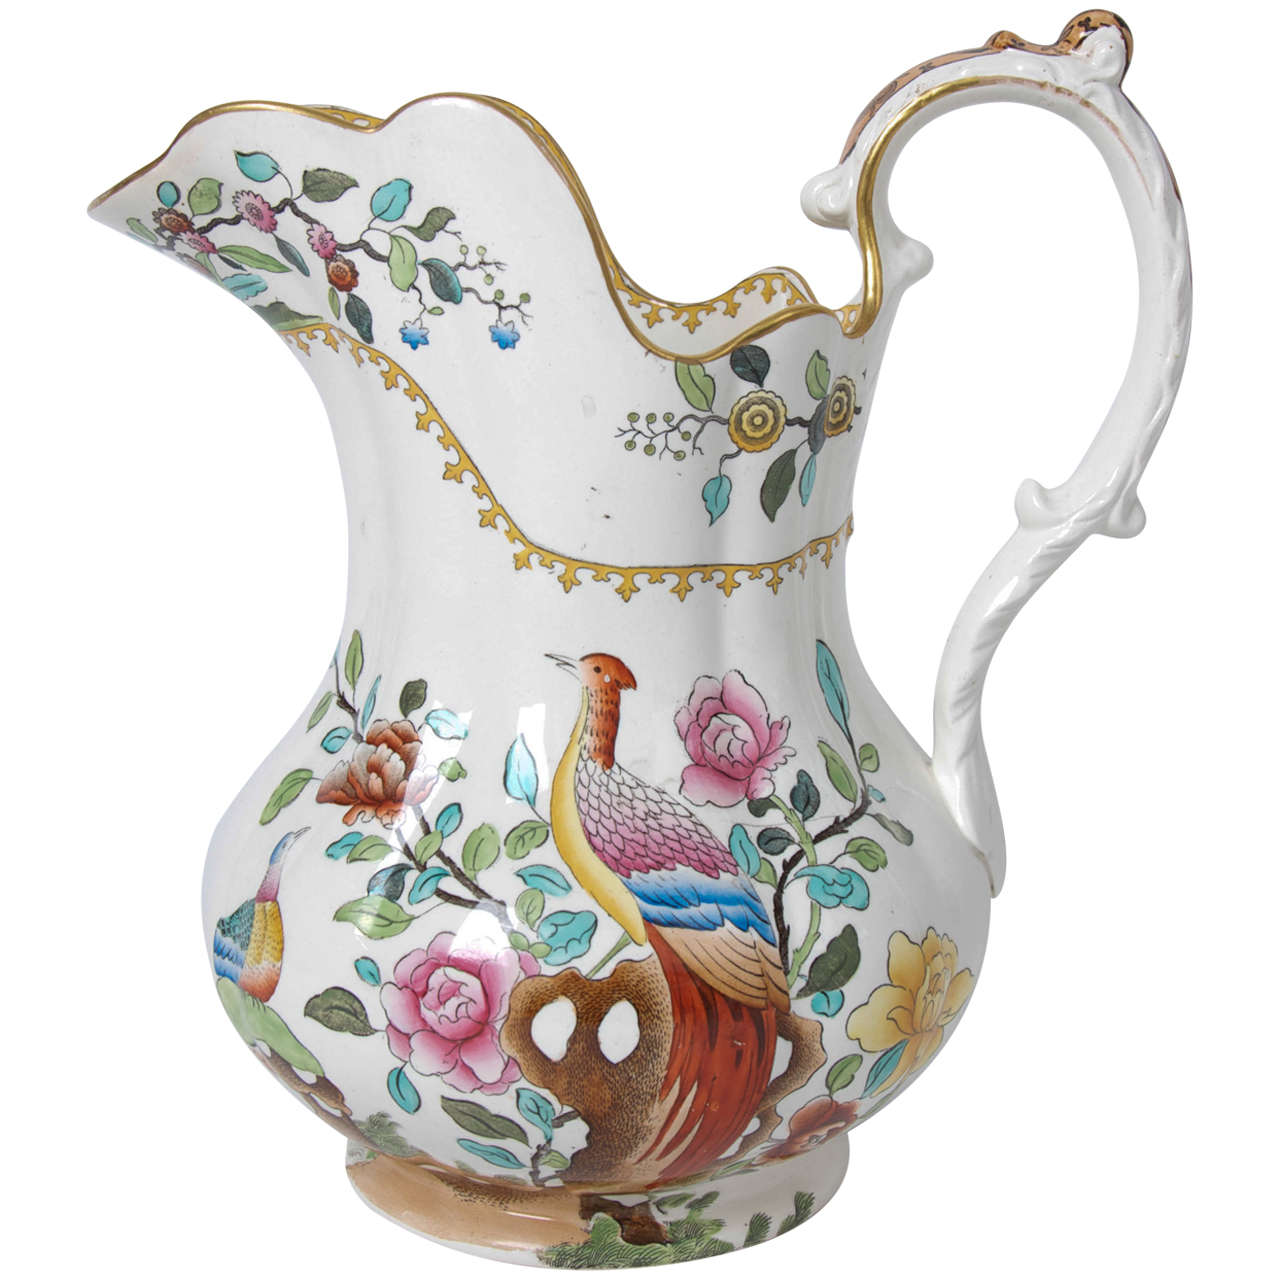 Late Spode Copeland Large Pitcher or Jug in Pheasant Pattern, circa 1891